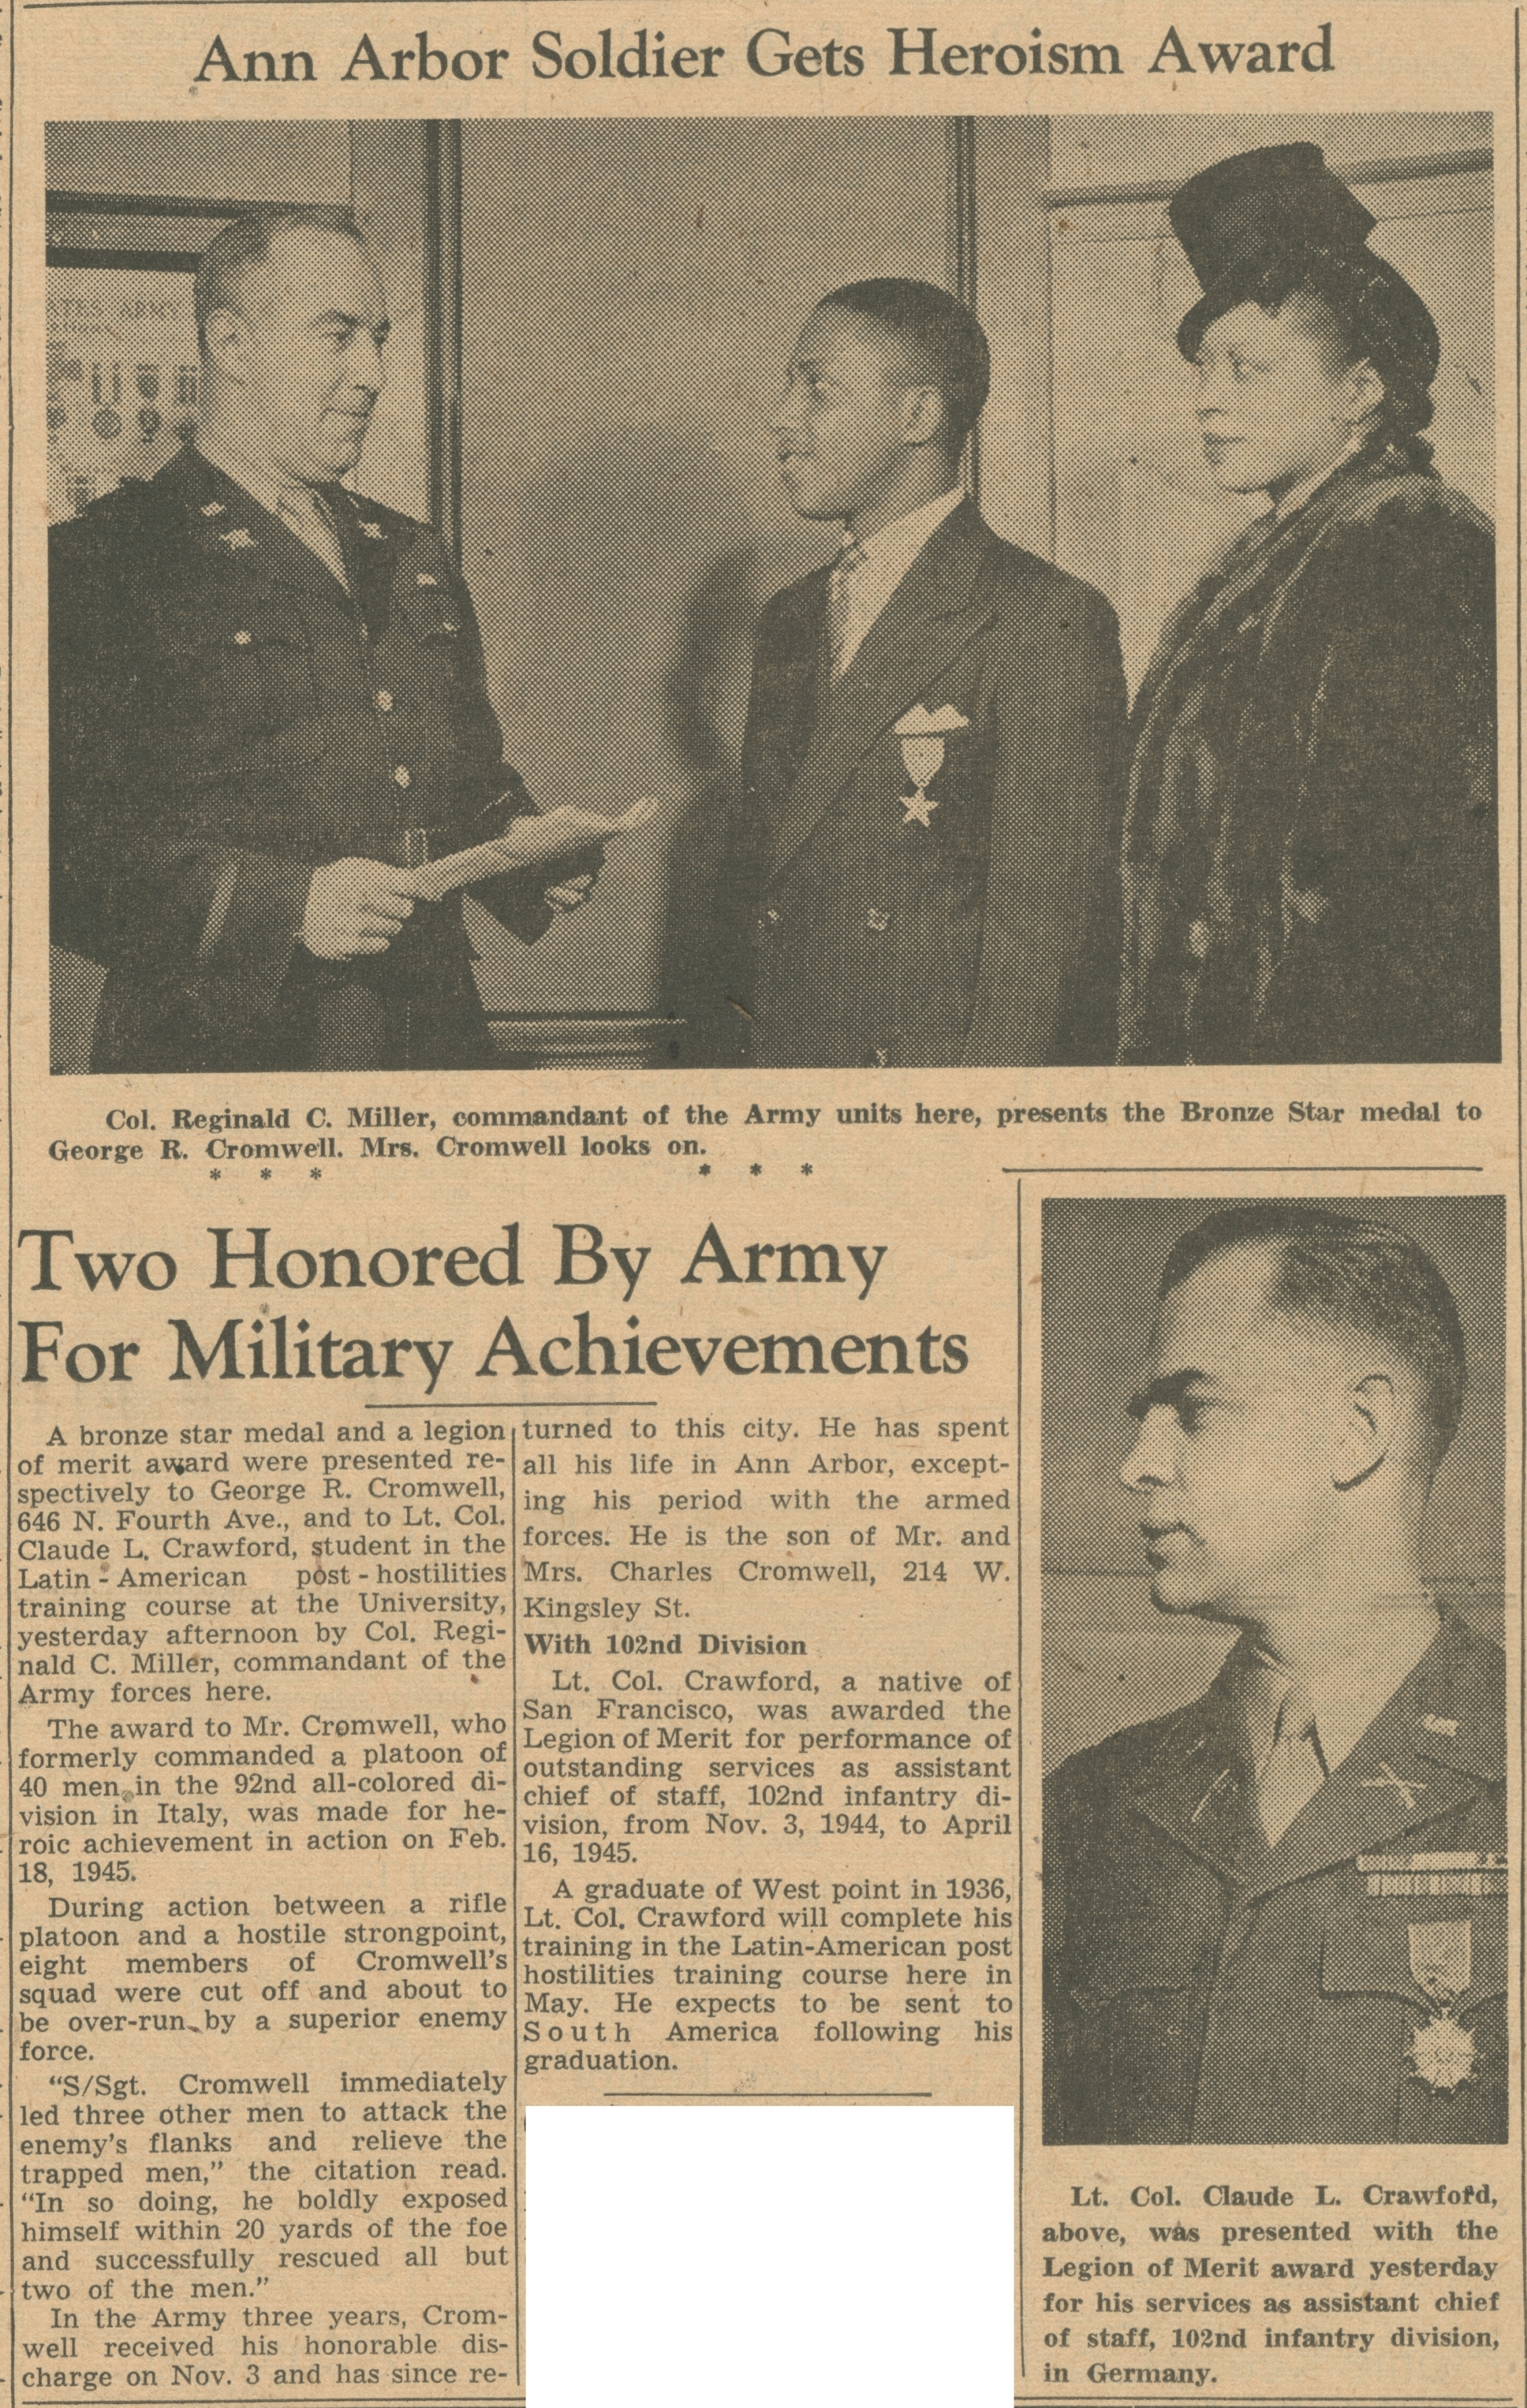 Two Honored By Army For Military Achievements image